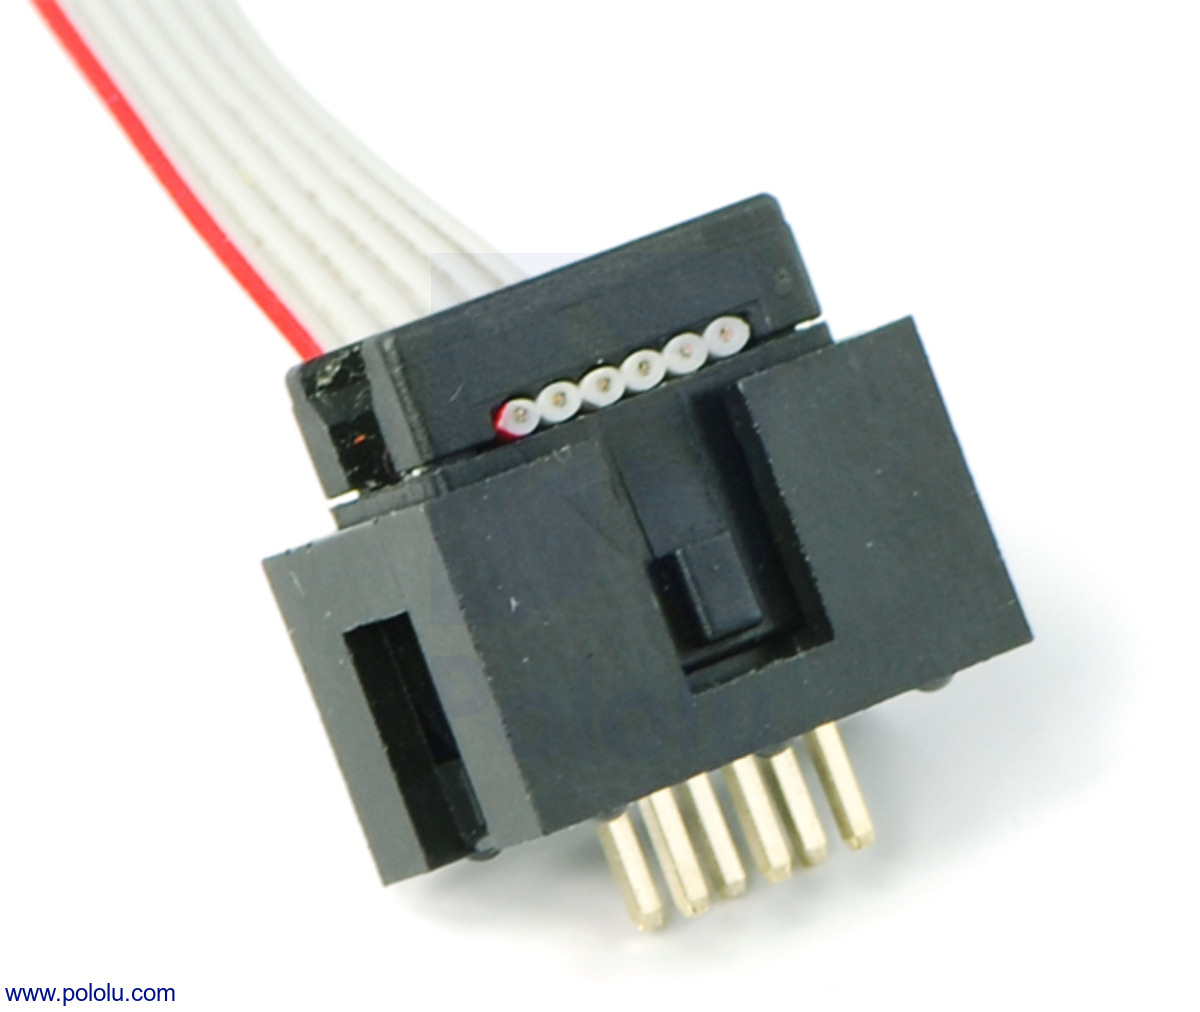 medium resolution of shrouded 2 3 pin box header with a ribbon cable and idc connector plugged into it